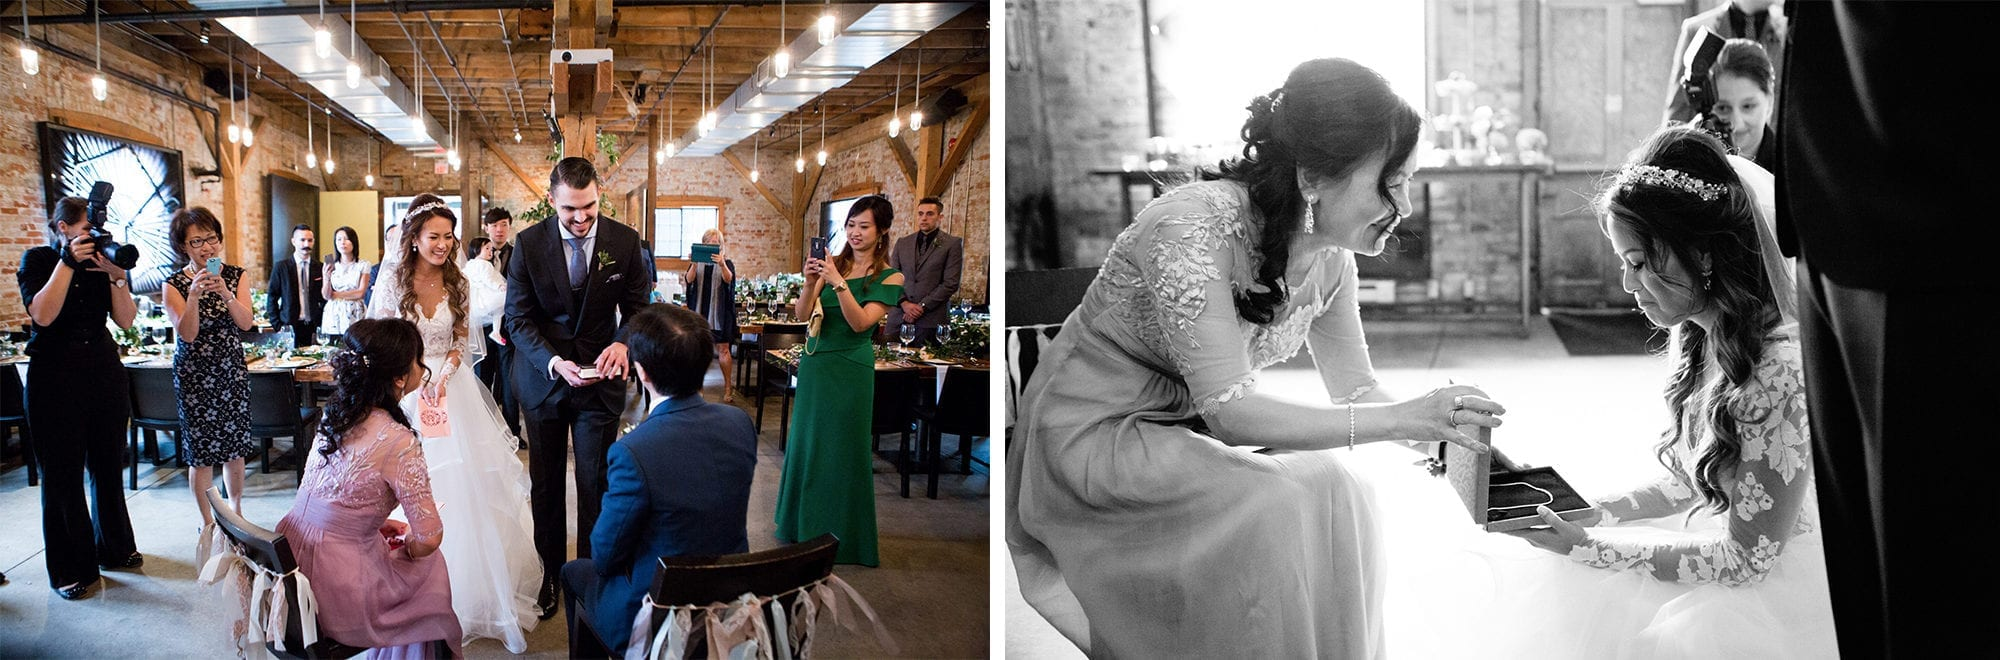 Archeo Bistro Chinese Tea Ceremony Toronto Wedding Zsuzsi Pal Photography